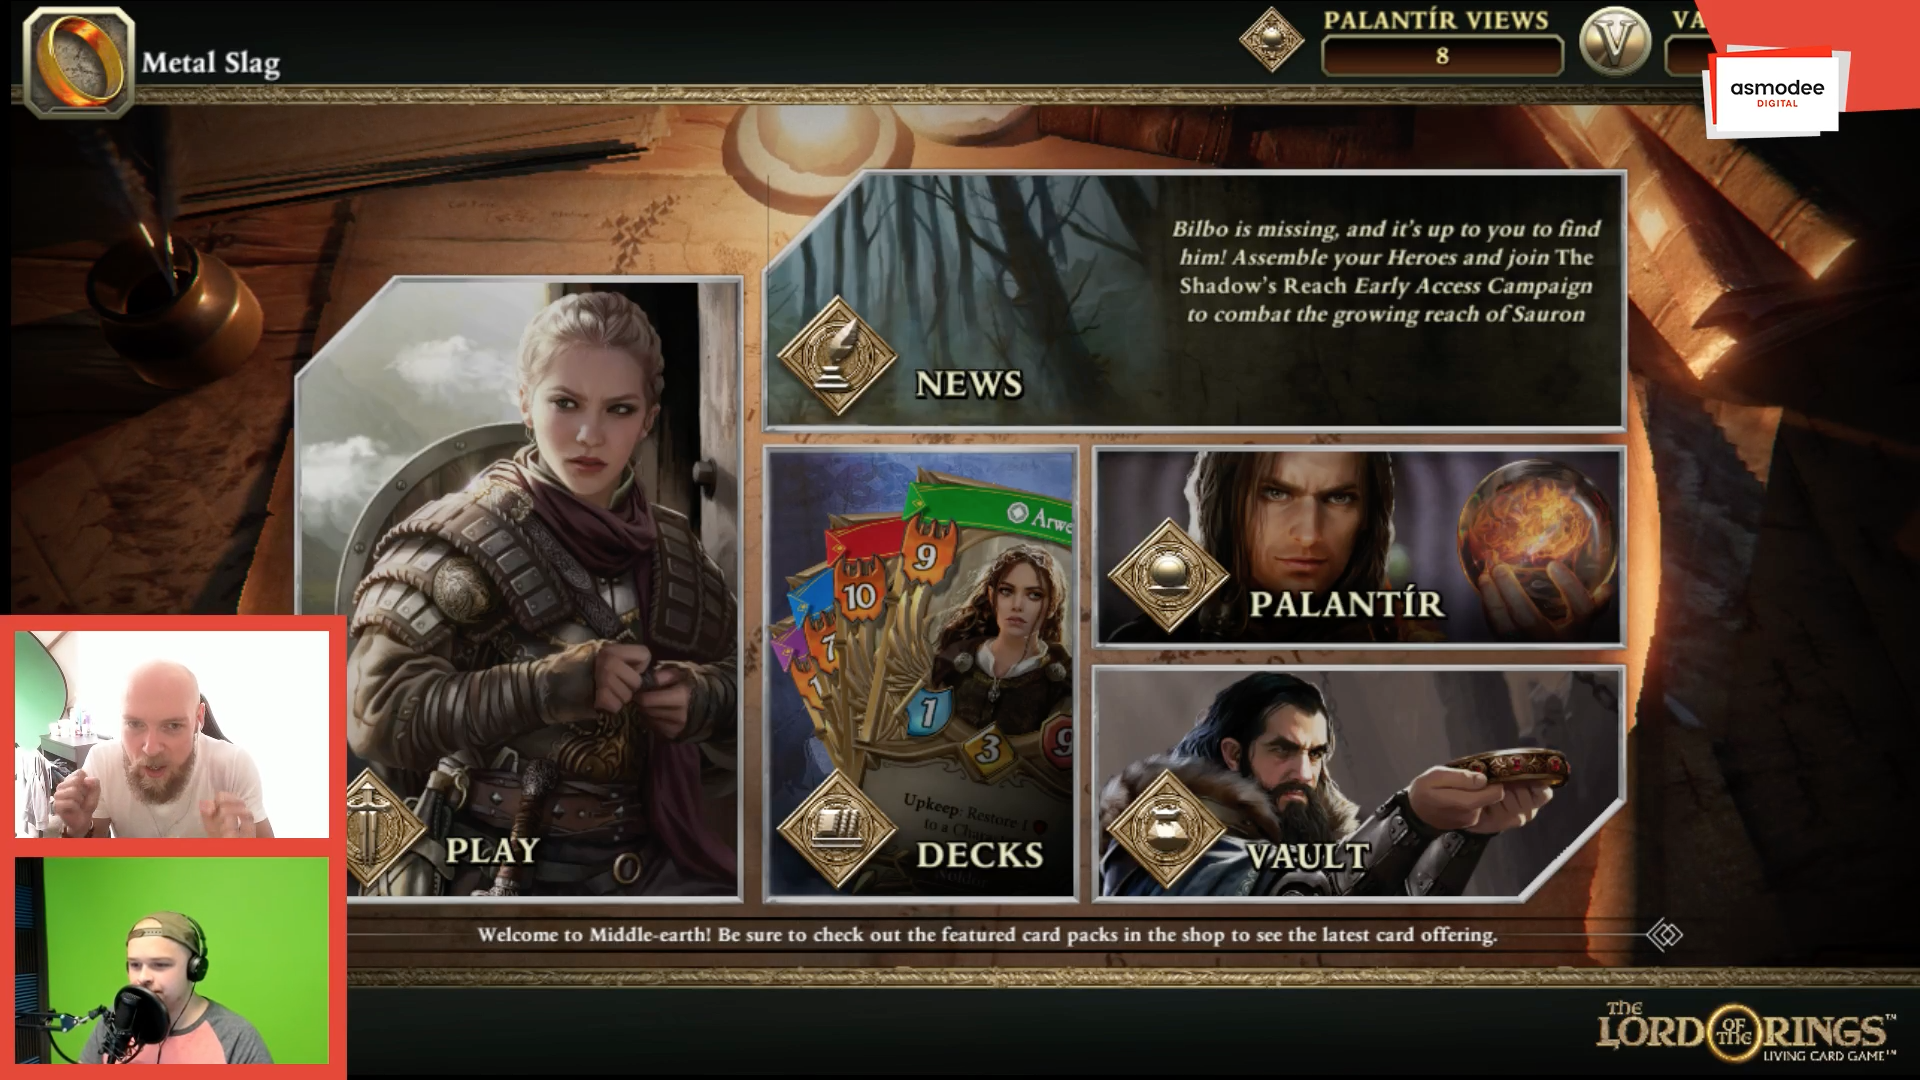 Missed our The Lord of the Rings: Living Card Game stream? Catch up on the whole thing here